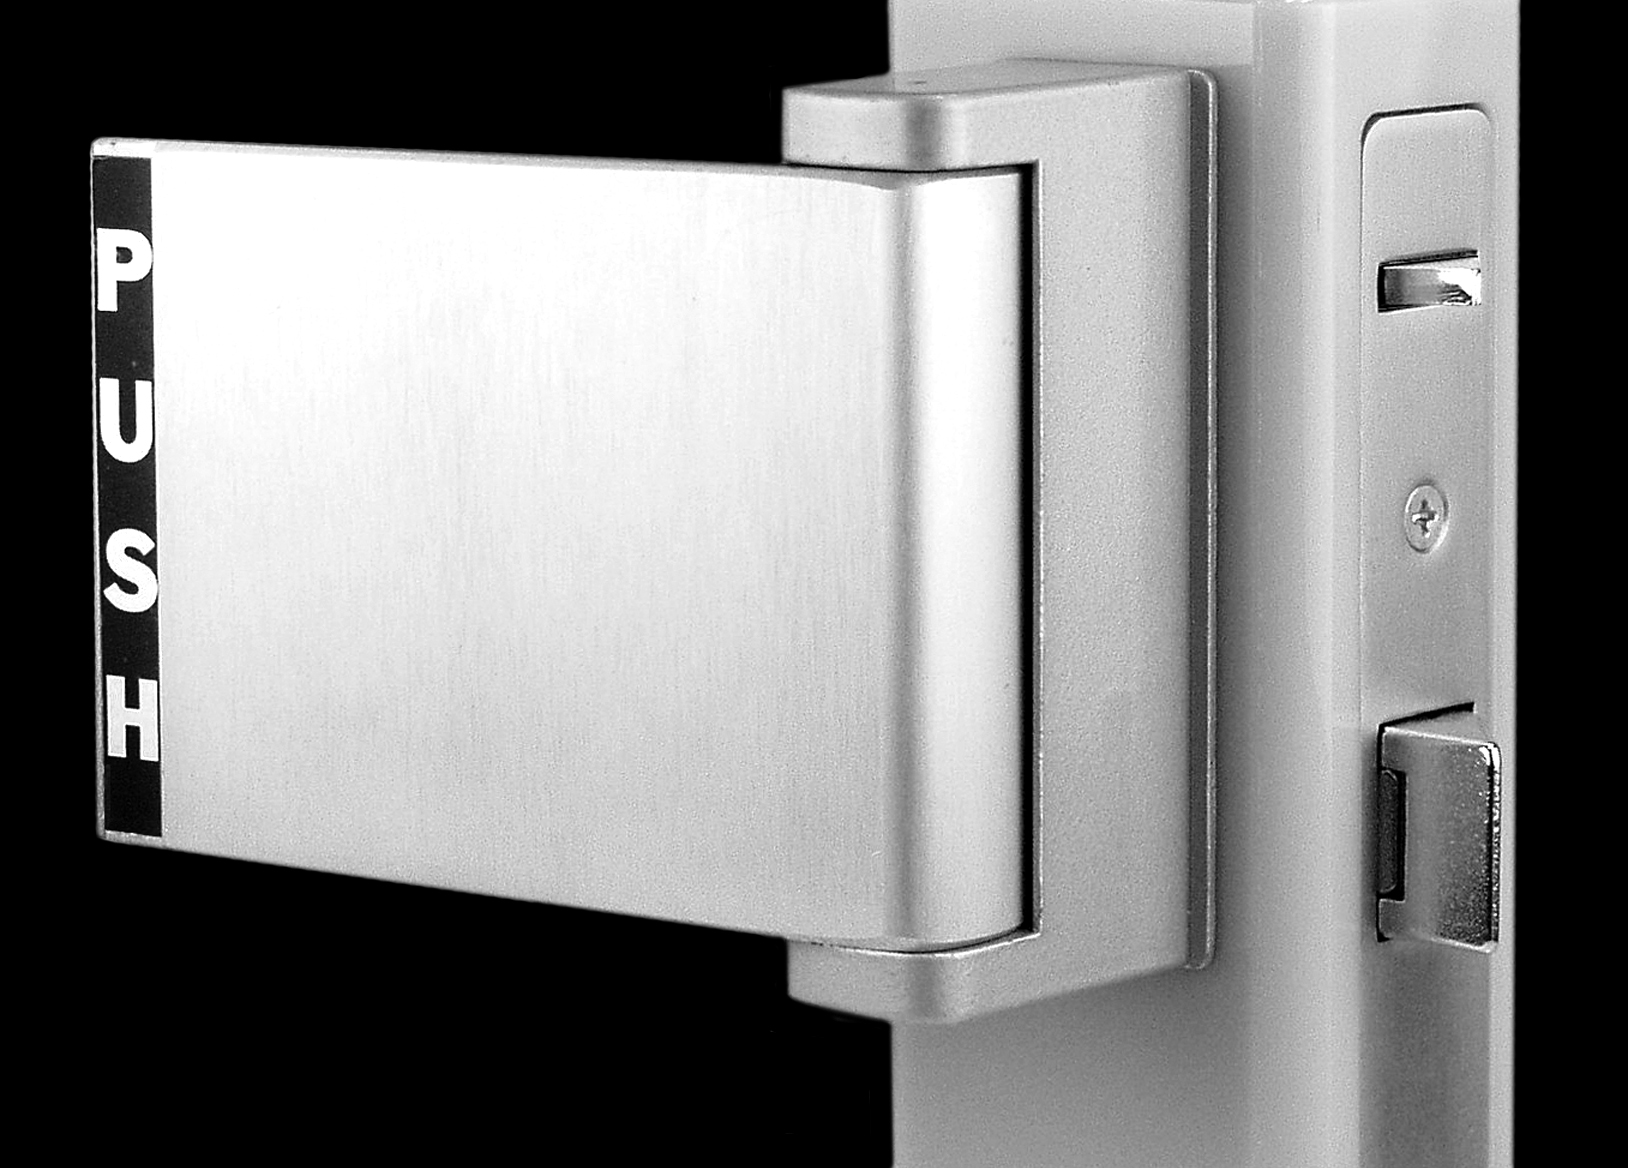 commercial entry door hardware. Commercial Entry Door Hardware Services Atlanta - A